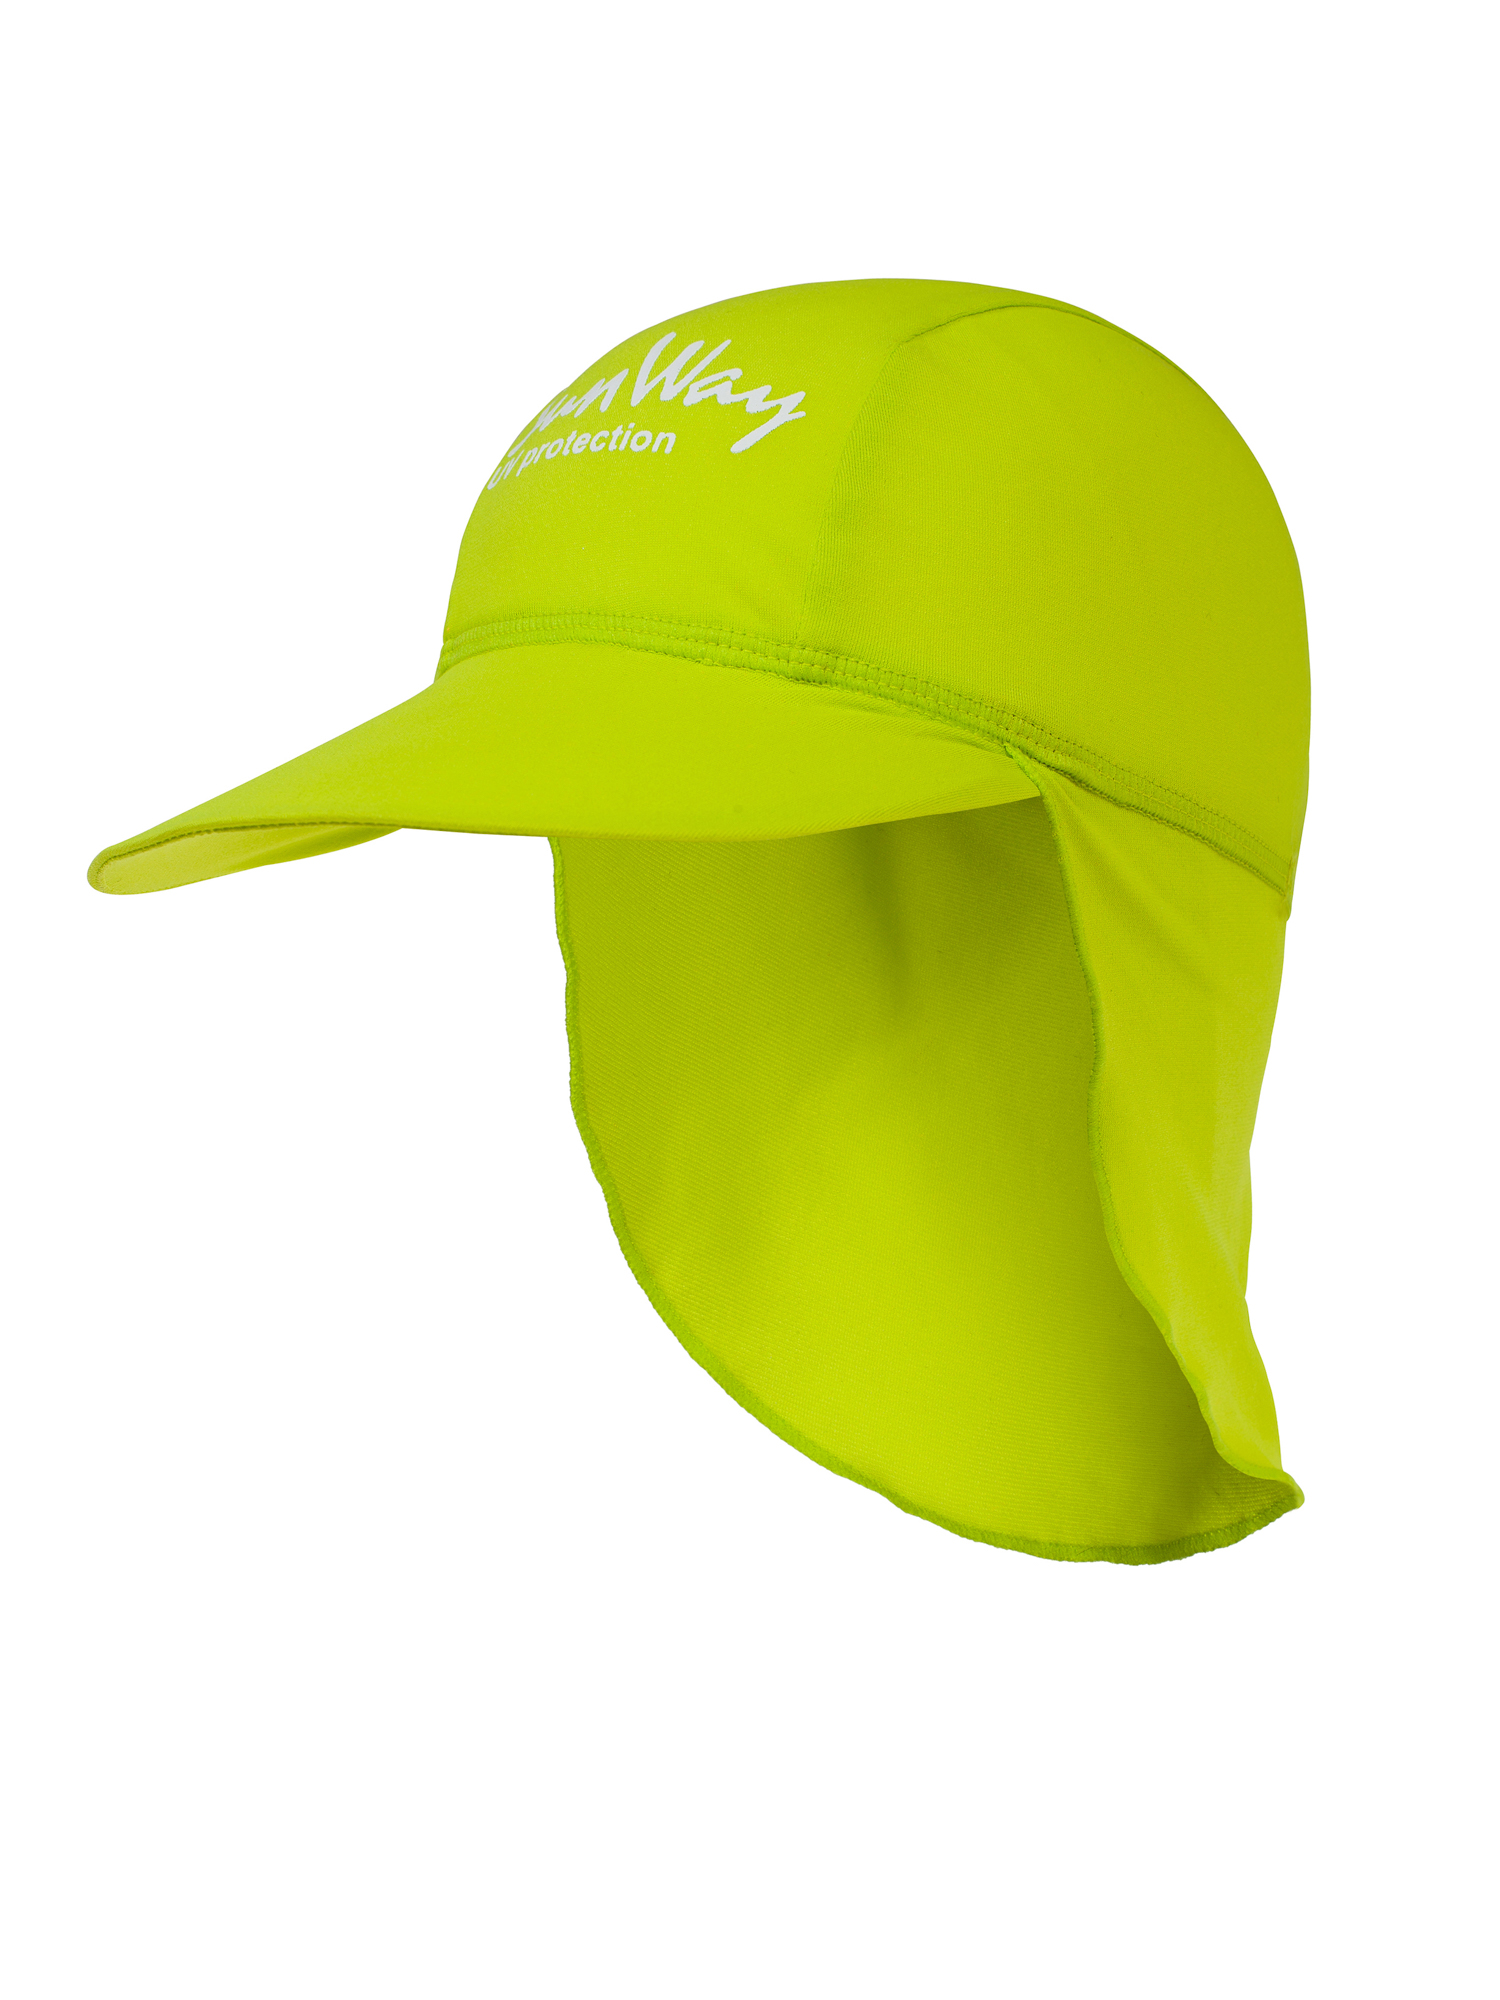 SunWay's UV Protective Hats: Lime Legionnaire Hat